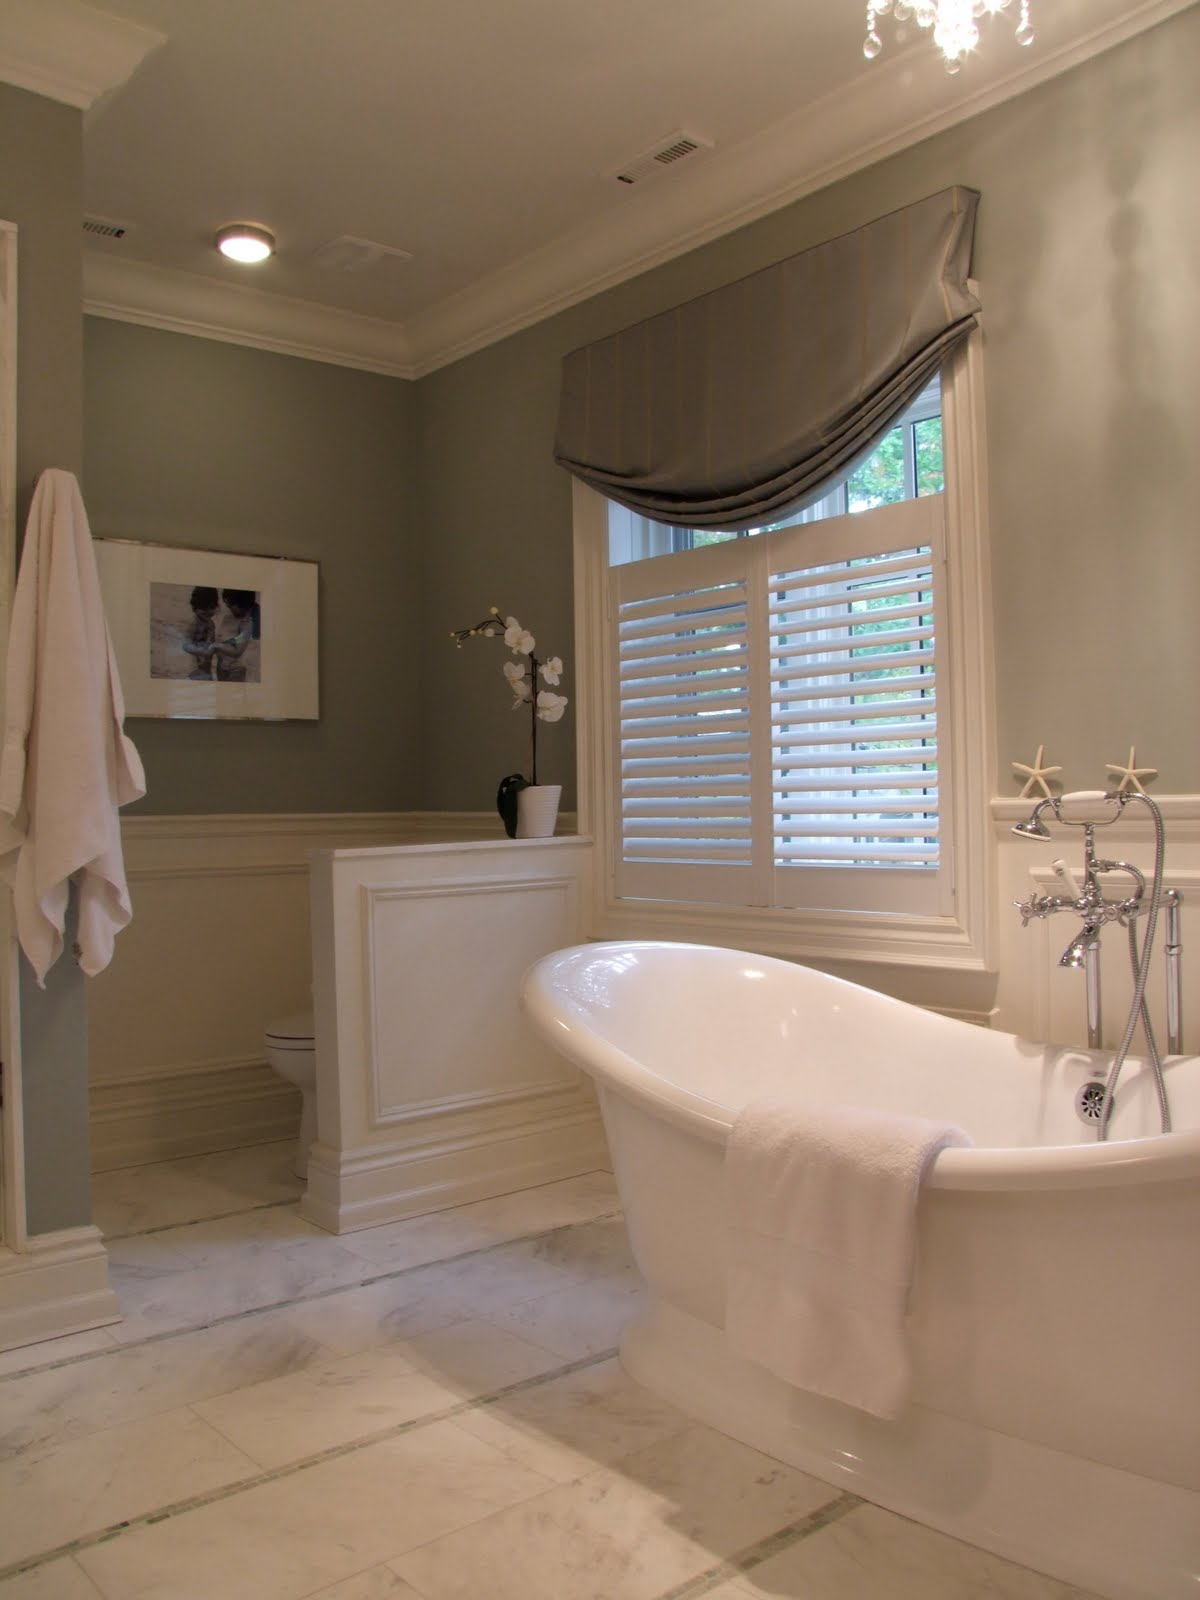 Pictures For Bathroom Walls Restful Retreat From Bradshaw Designs In Beautiful San